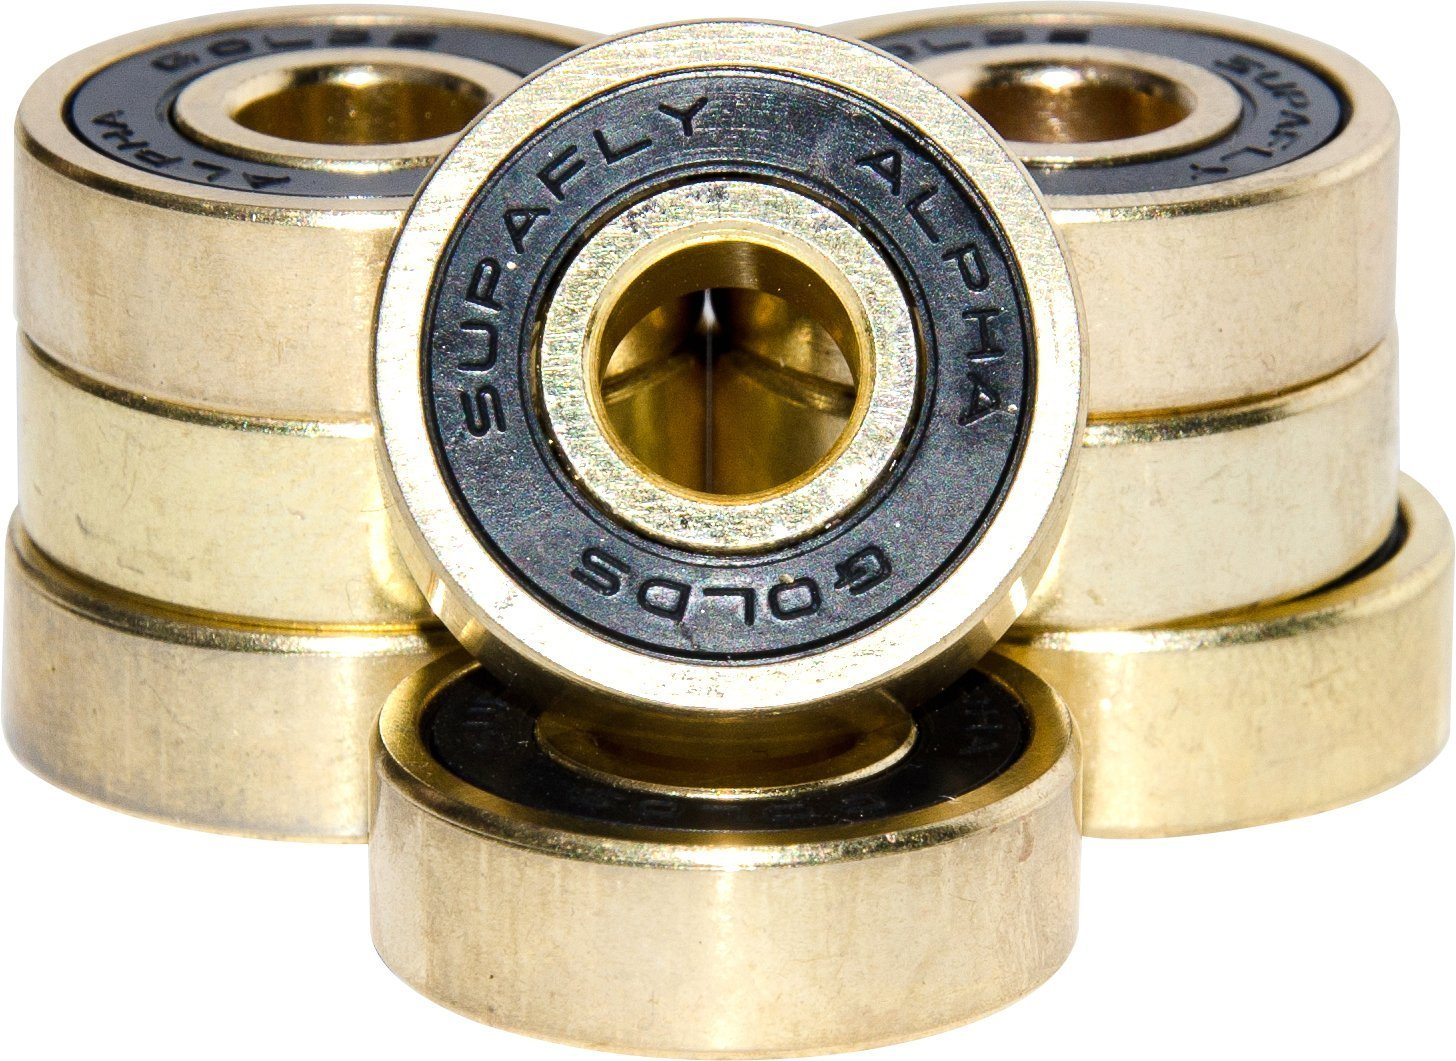 Pro Skateboard Bearings - Premium 608rs Titanium, Ultra-Smooth and Ultra-Fast Skateboard Bearings, Gold or Black